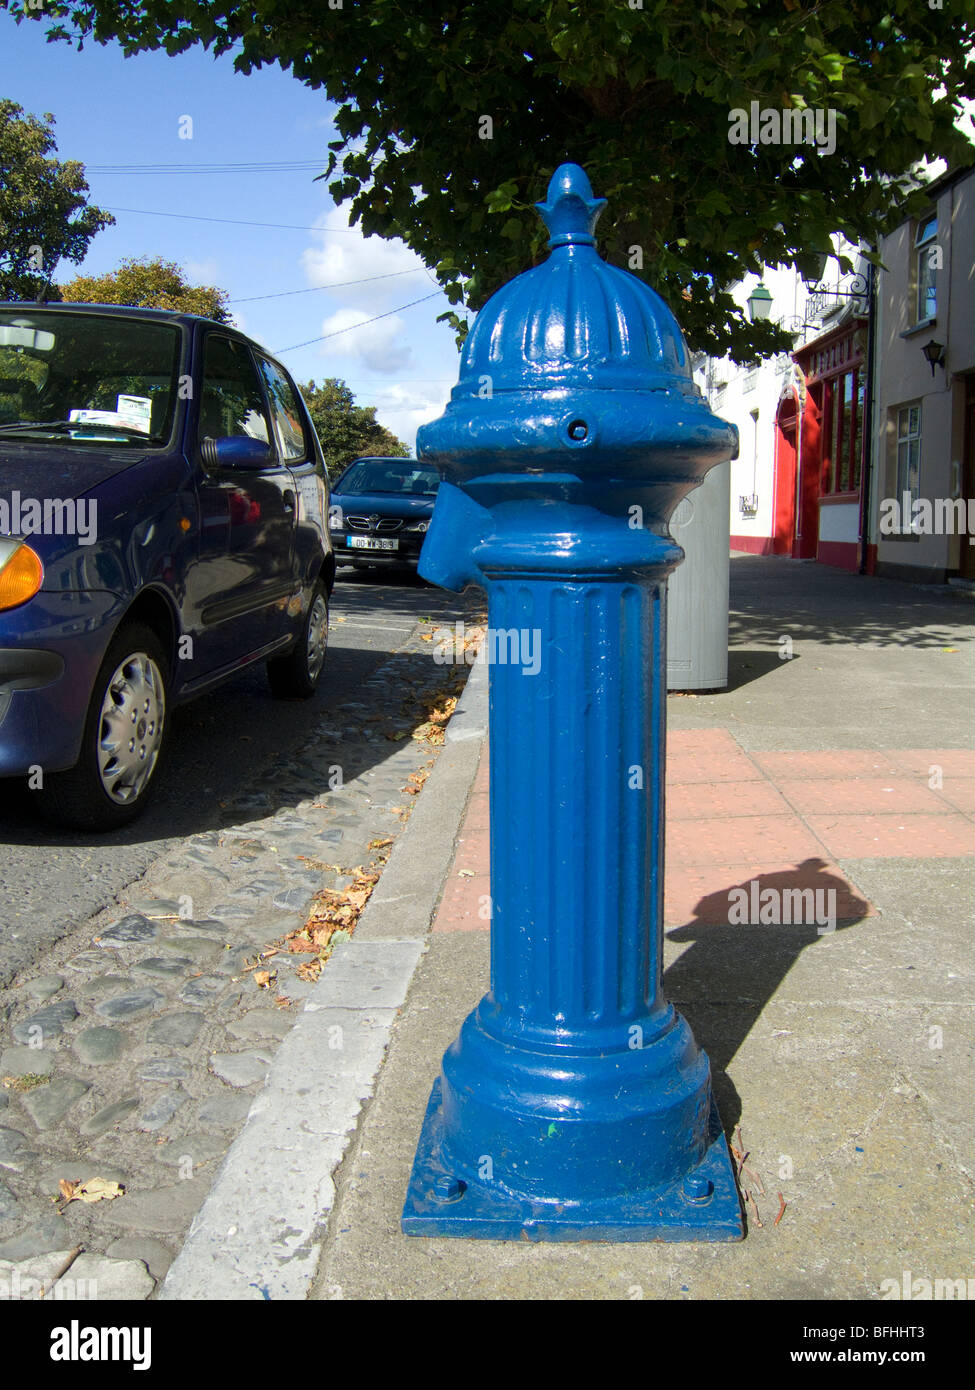 A relic of the social past is this water tap on the street for public domestic water supply - Skerries, county Dublin, - Stock Image